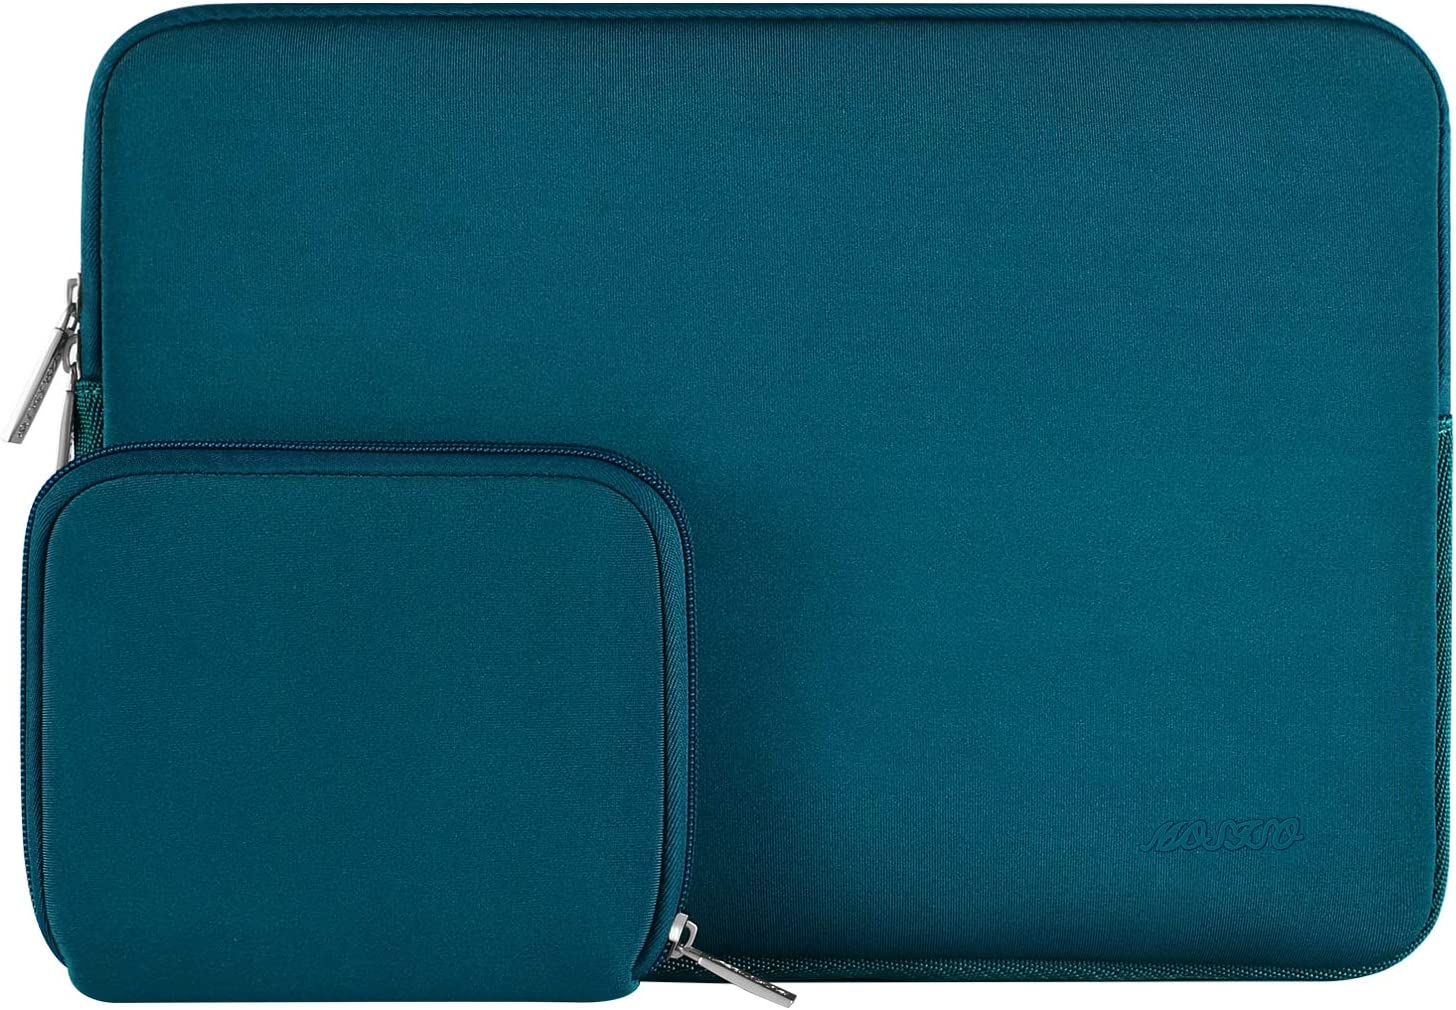 MOSISO Laptop Sleeve Compatible with 15 inch MacBook Pro Touch Bar A1990 A1707, ThinkPad X1 Yoga, 14 Dell HP Acer, 2019 Surface Laptop 3 15, Water Repellent Neoprene Bag with Small Case, Deep Teal